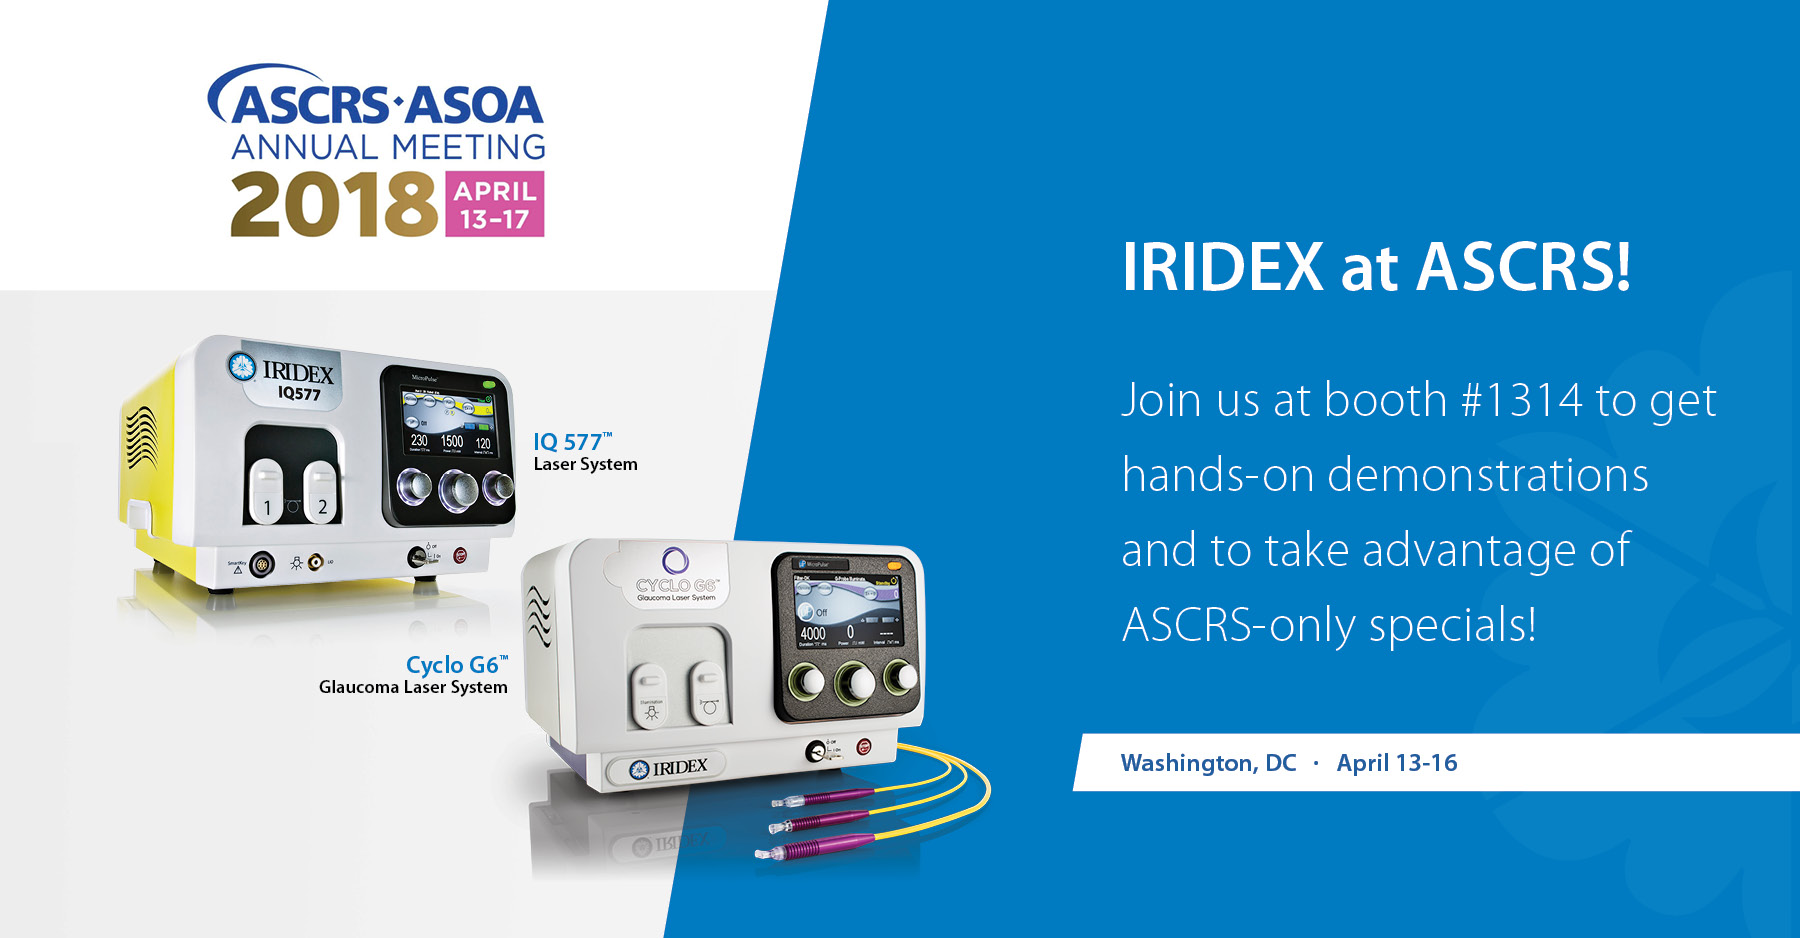 IRIDEX at ASCRS